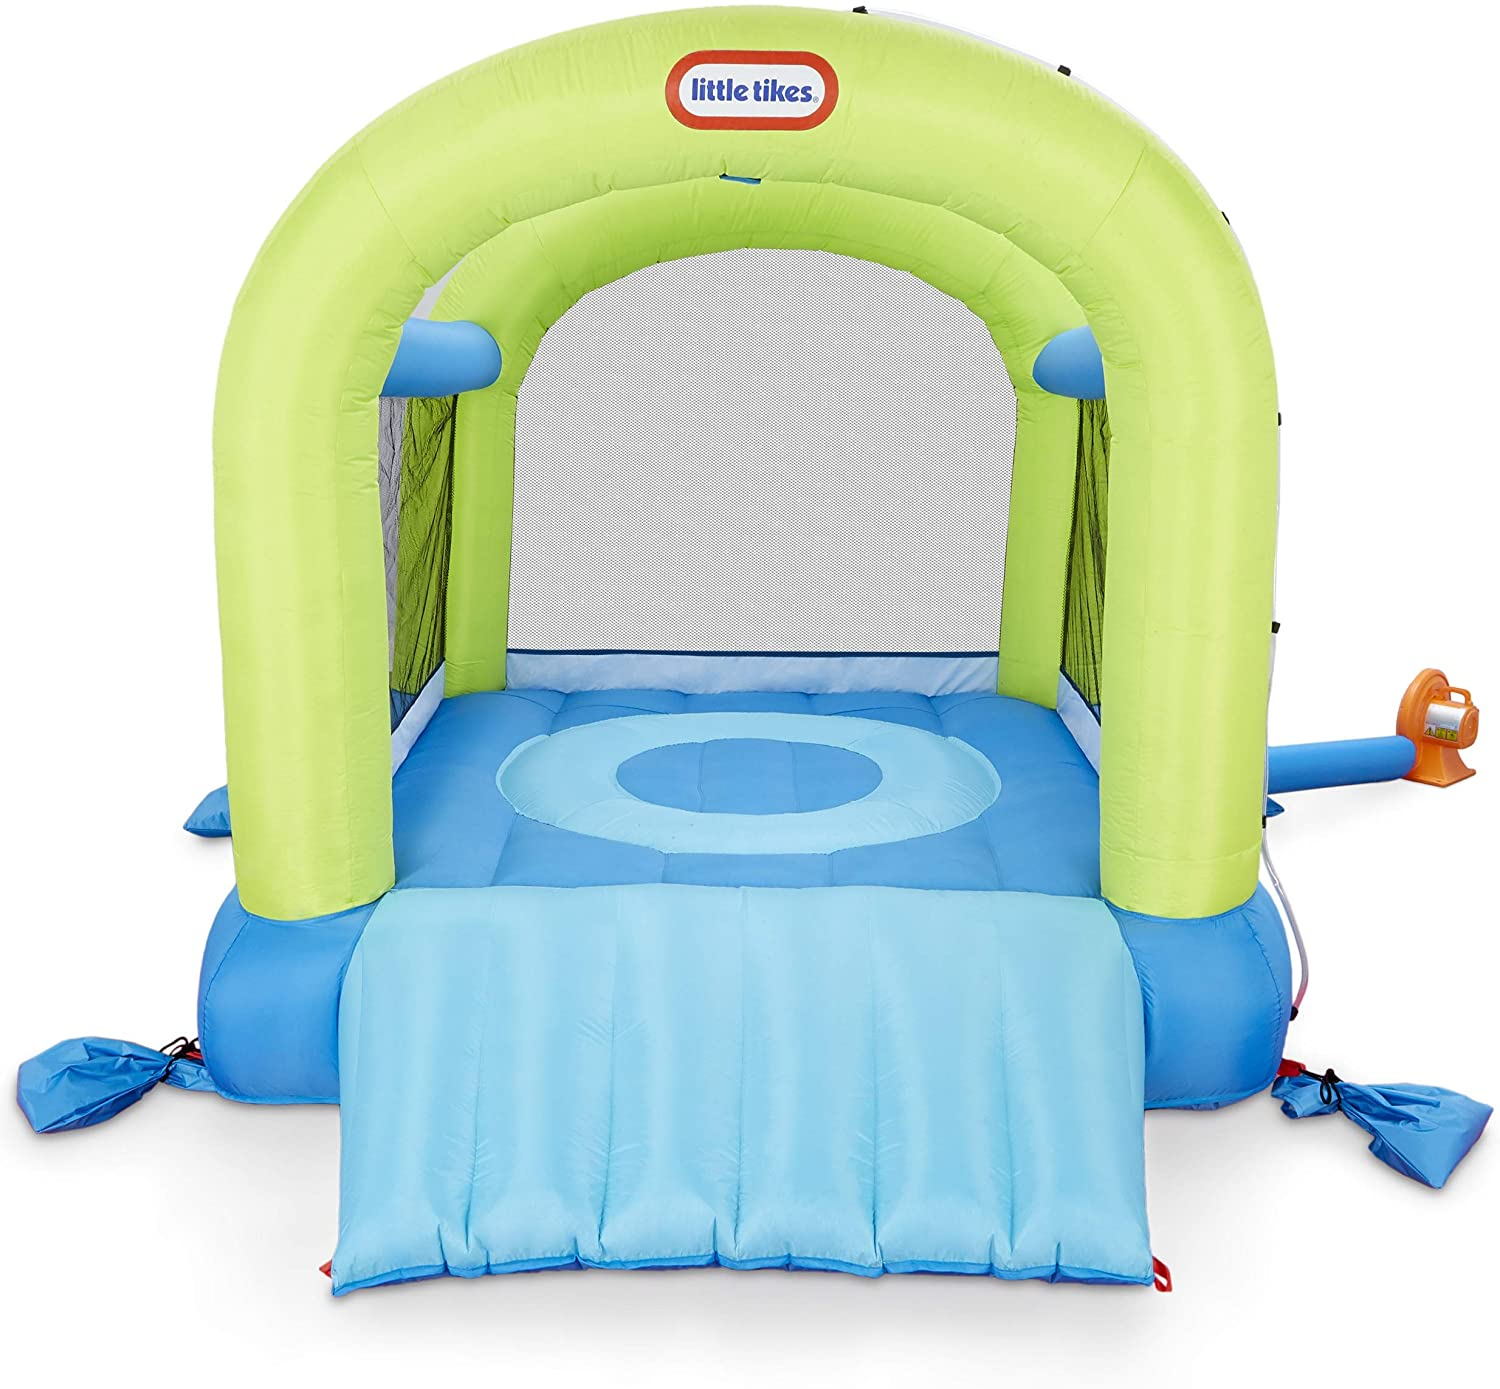 Little Tikes Splash n' Spray Indoor/Outdoor 2-in-1 Inflatable Bouncer